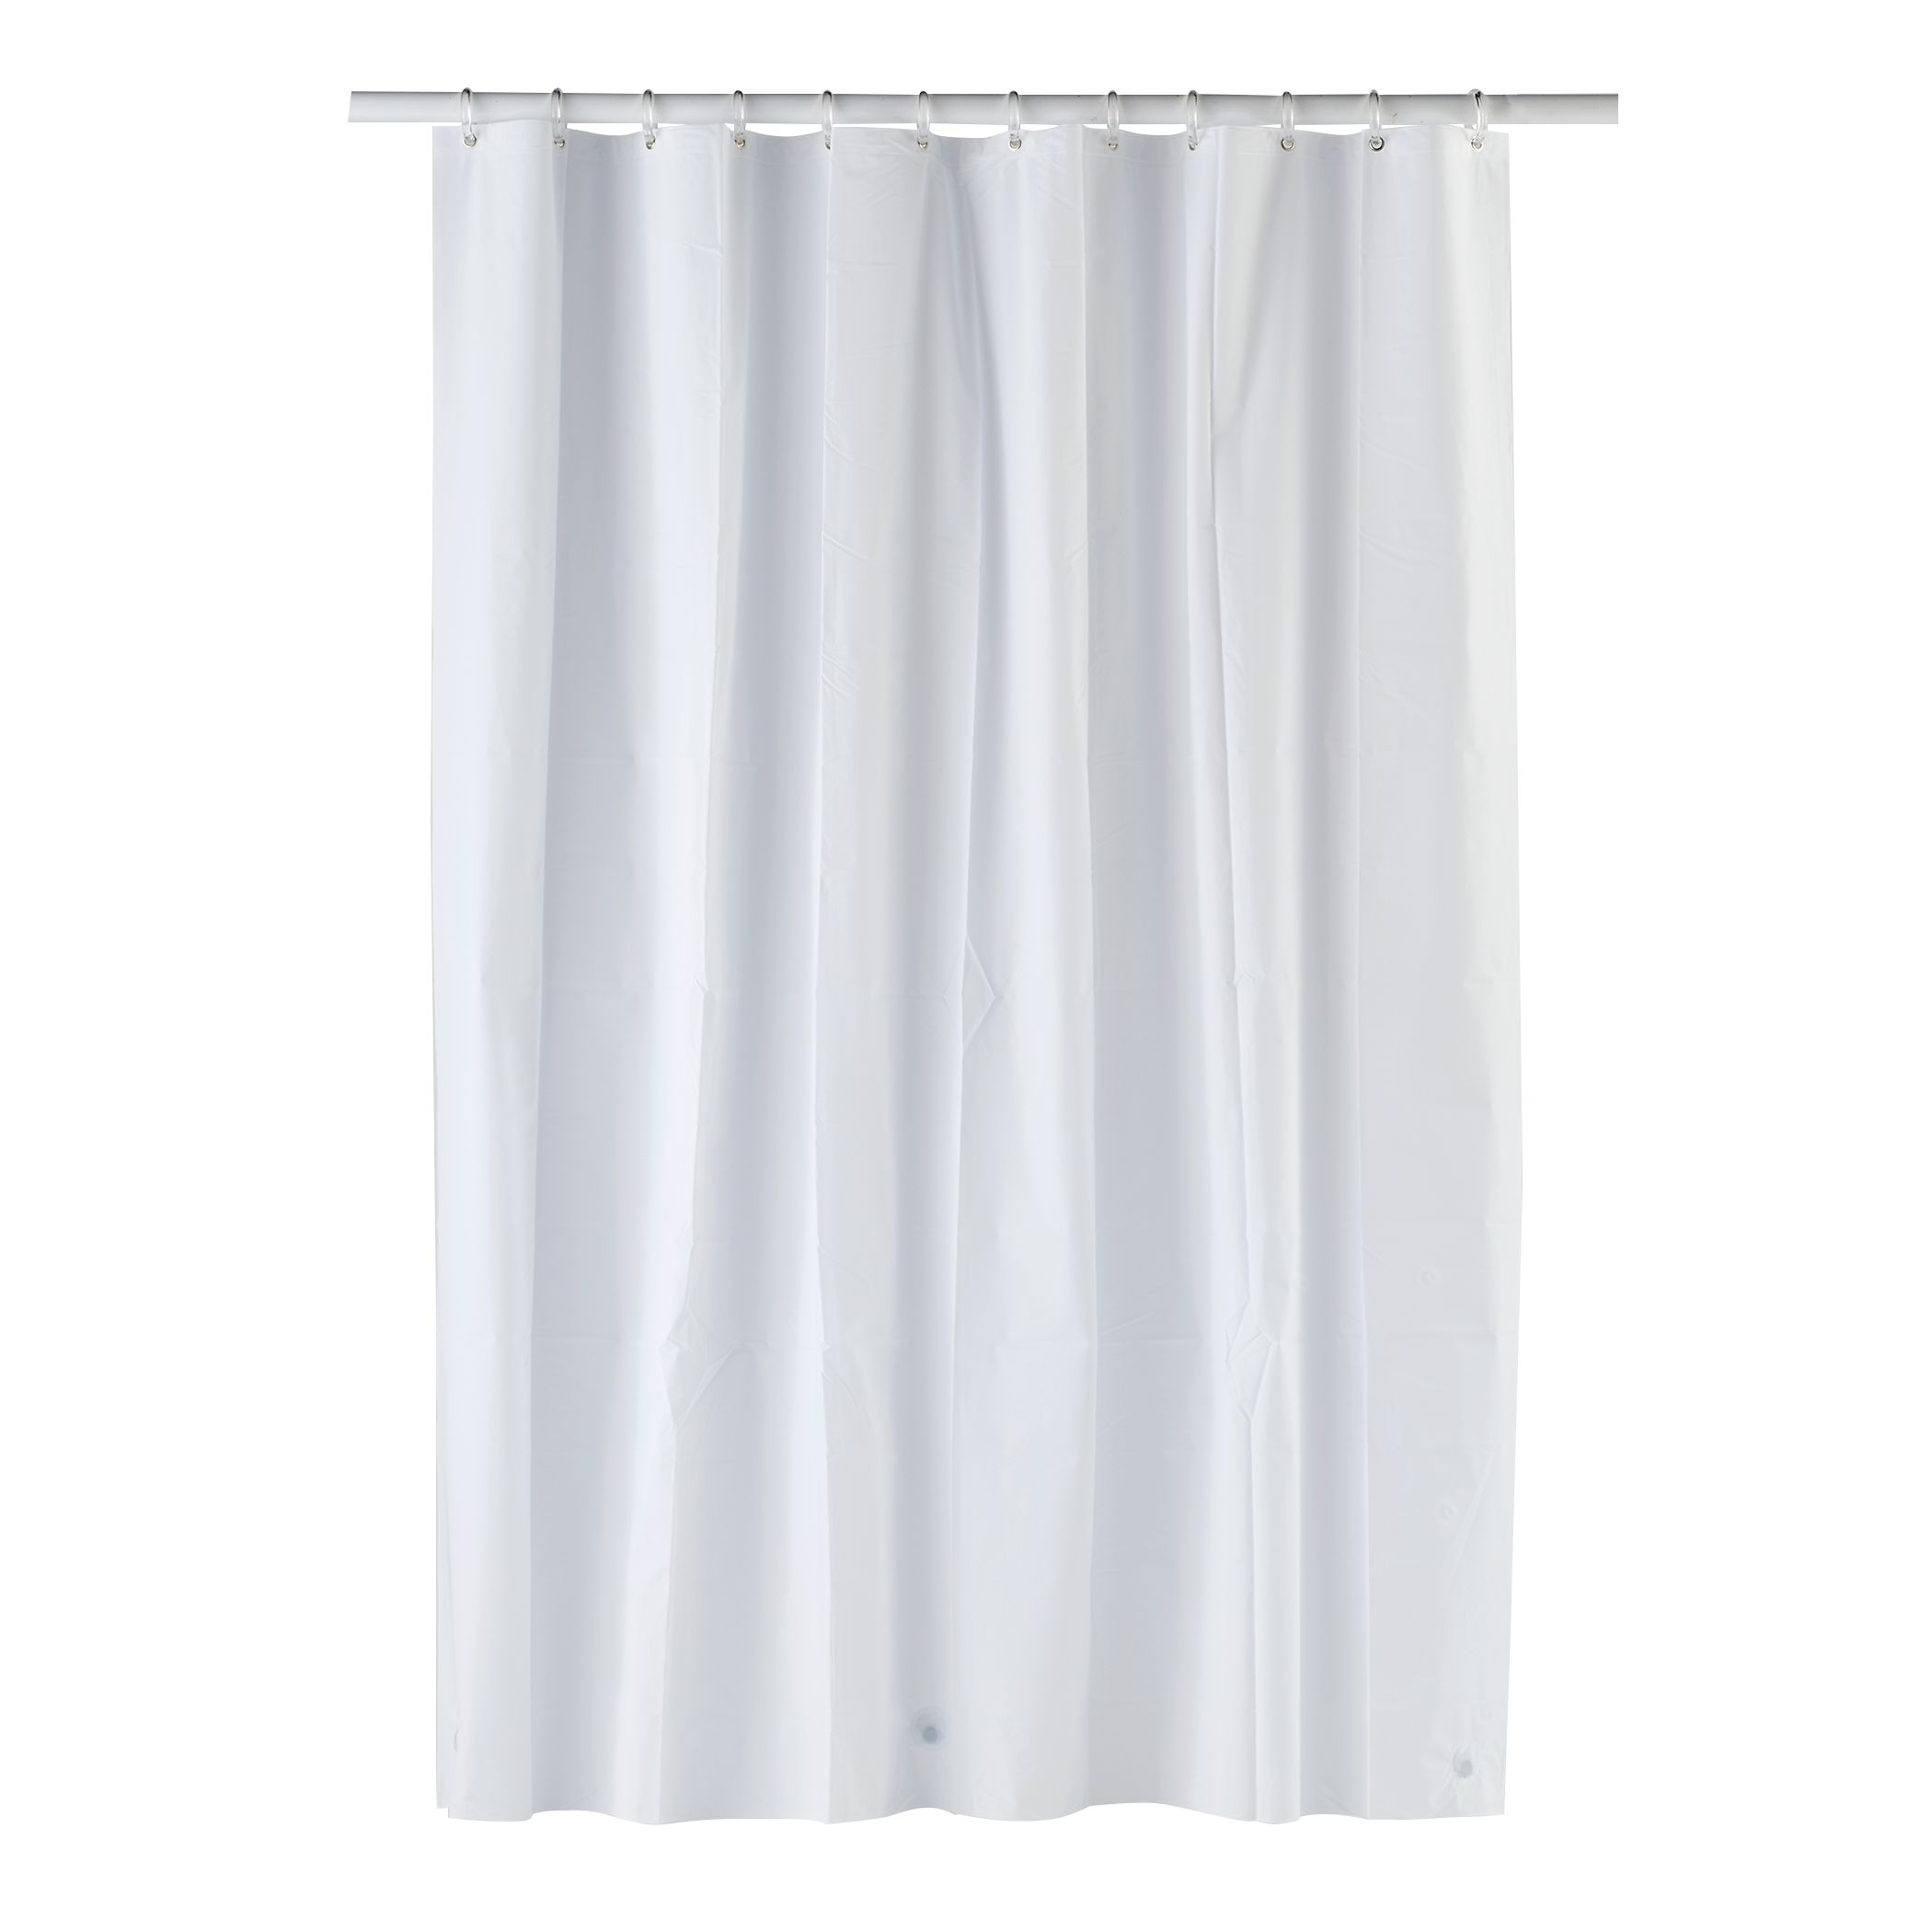 Attractive Home Classics® PEVA Super Soft Shower Curtain Liner